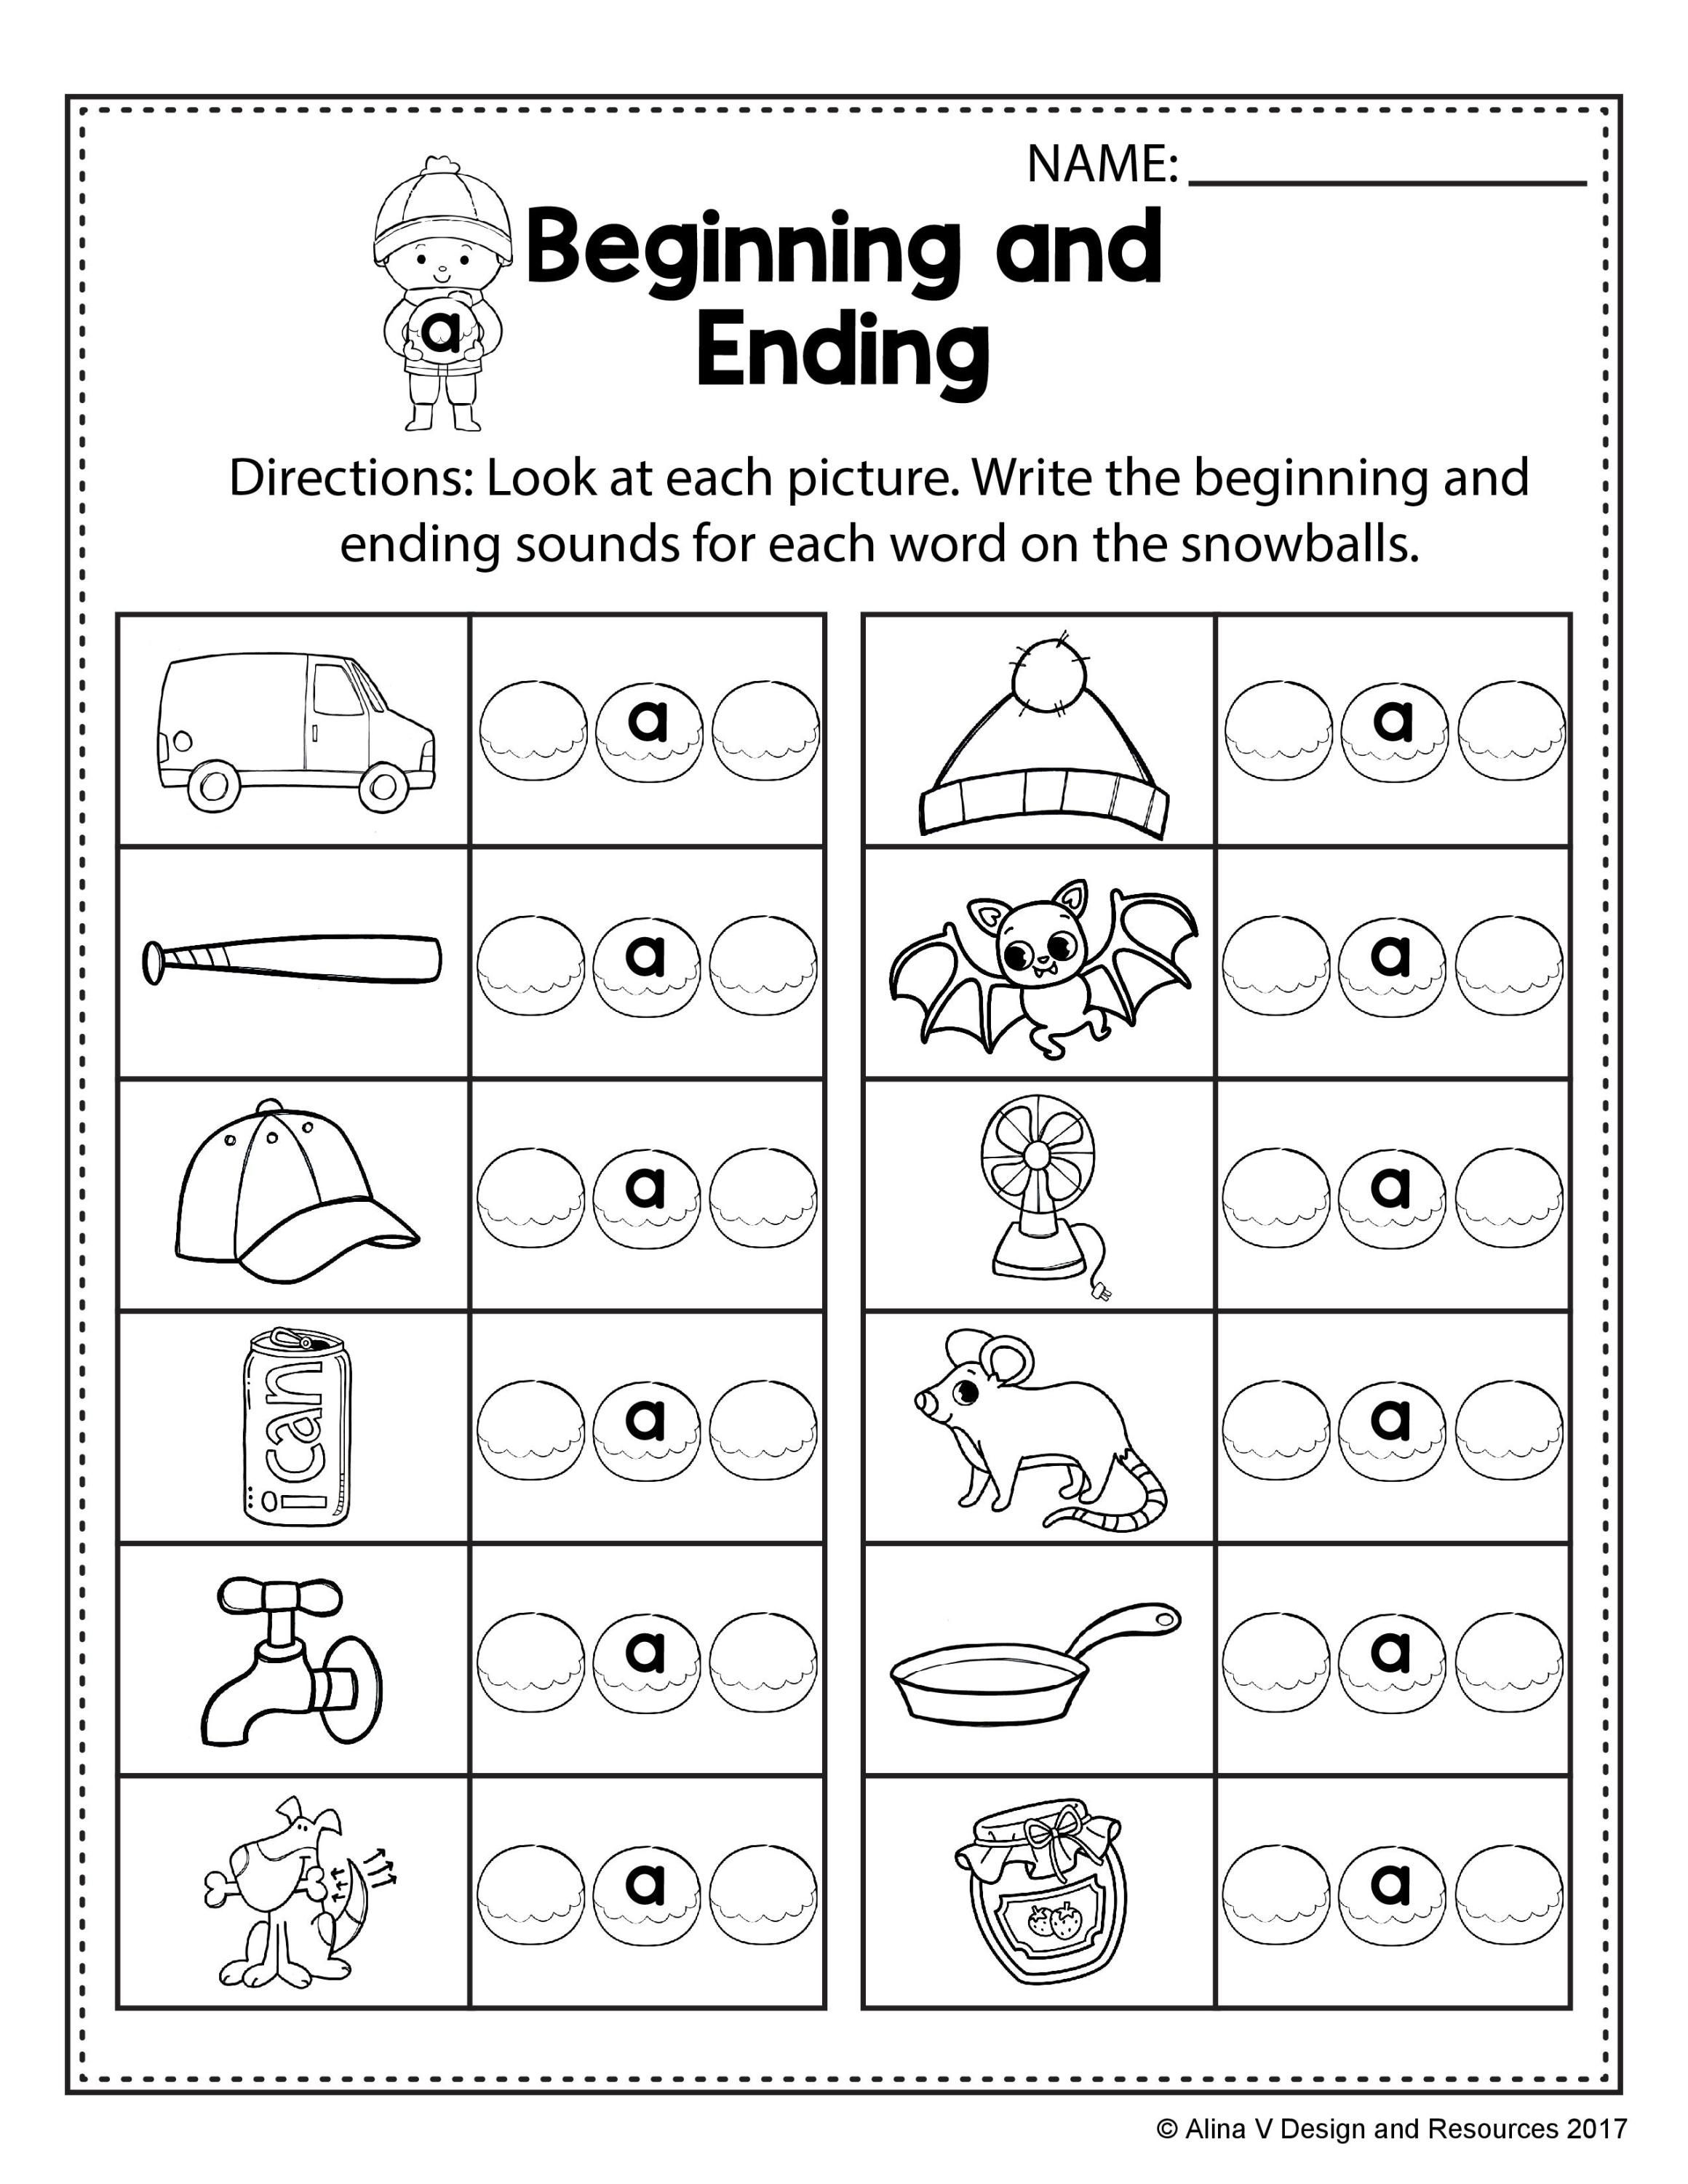 Free Winter Literacy Worksheet For Kindergarten No Prep Alina V Design